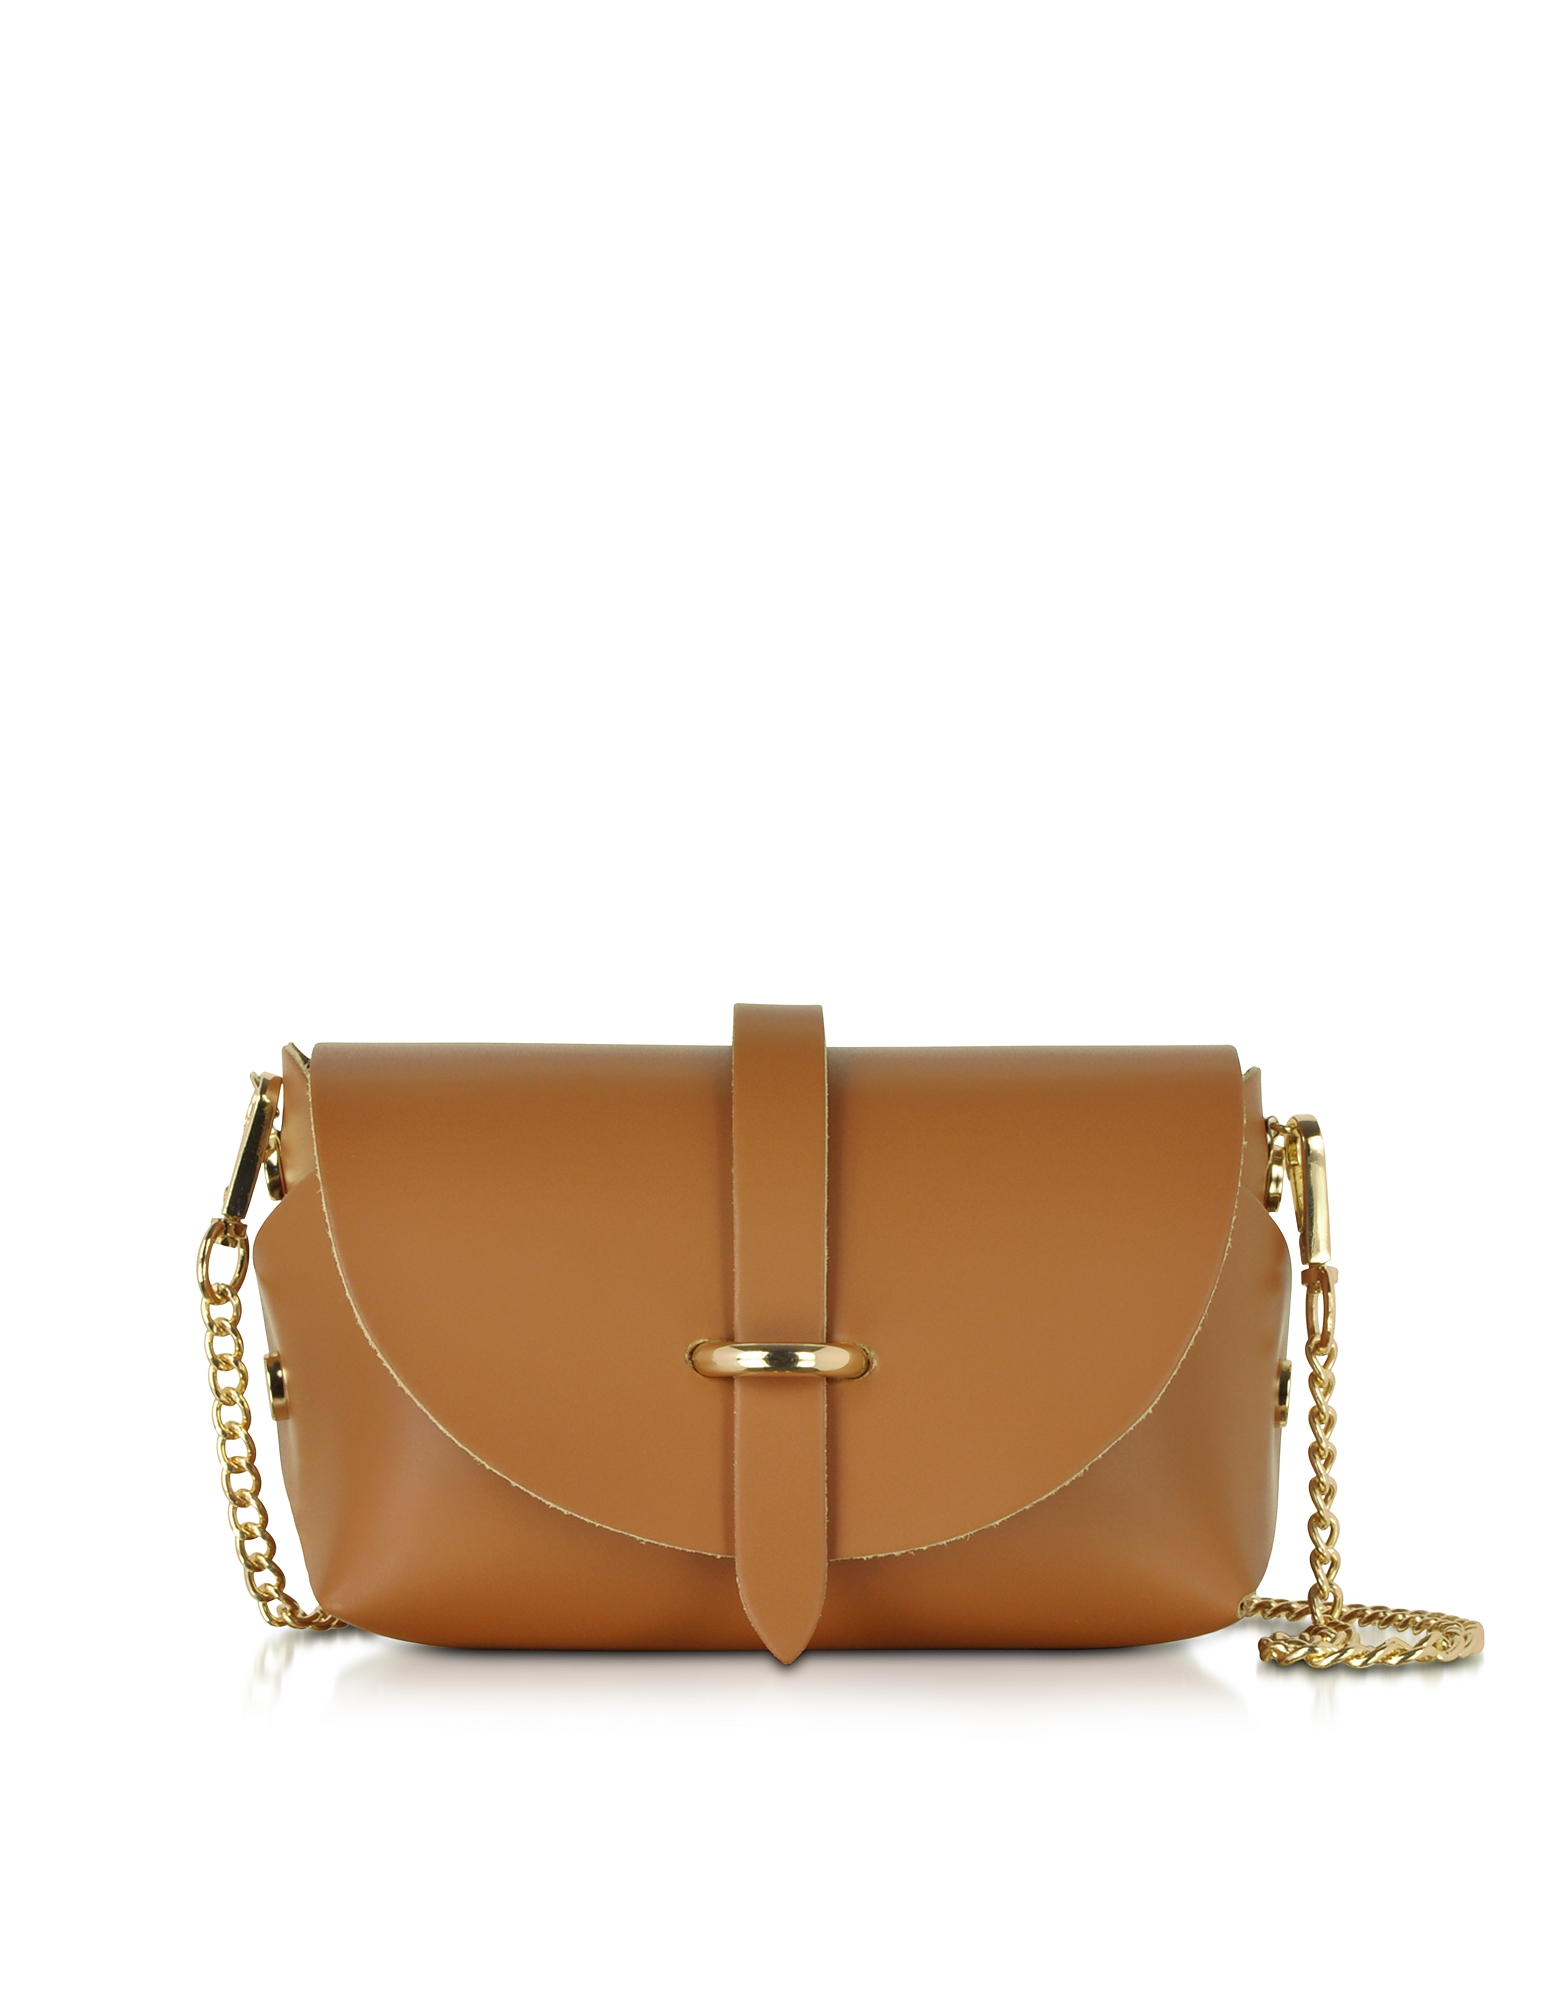 Le Parmentier Handbags, Caviar Small Cognac Leather Shoulder Bag